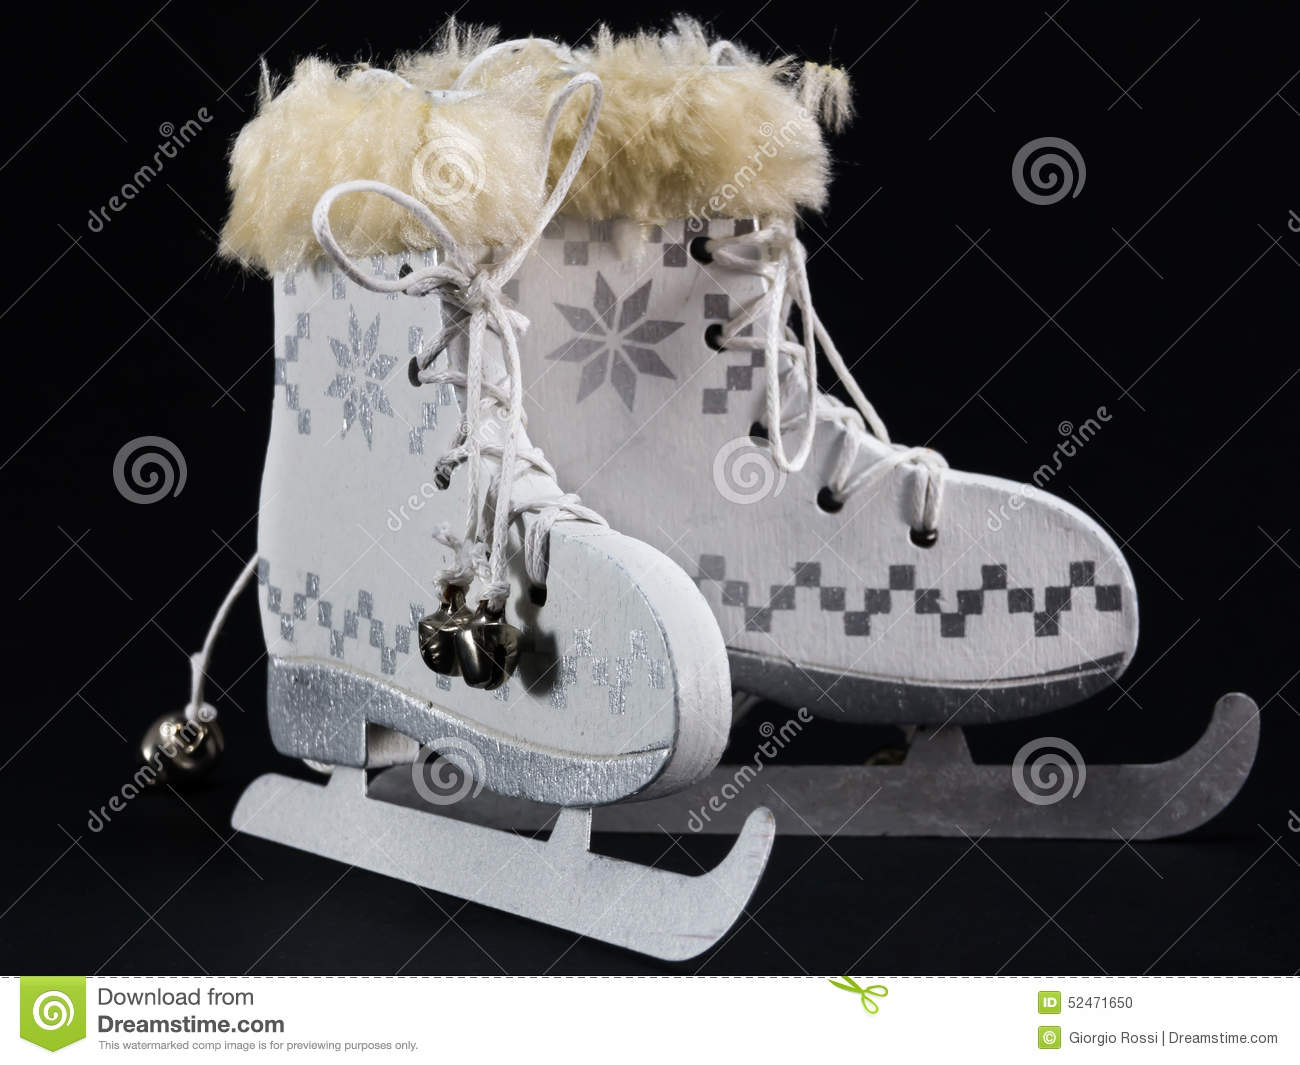 download white ice skate christmas decoration stock photo image of decorative background 52471650